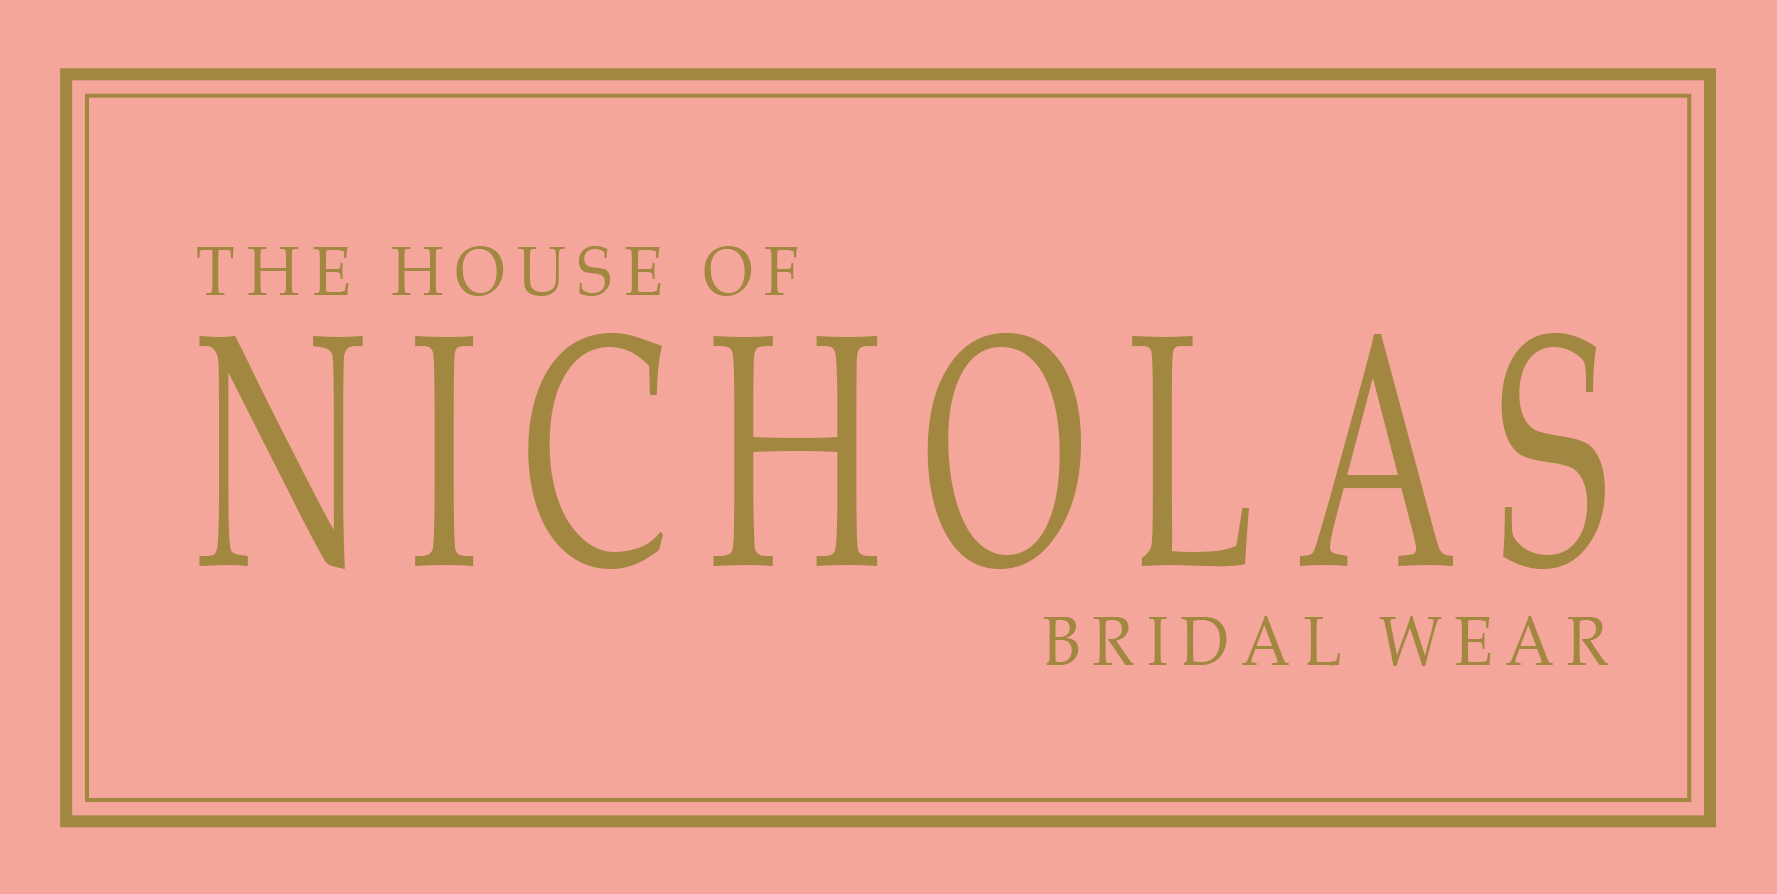 The House of Nicholas